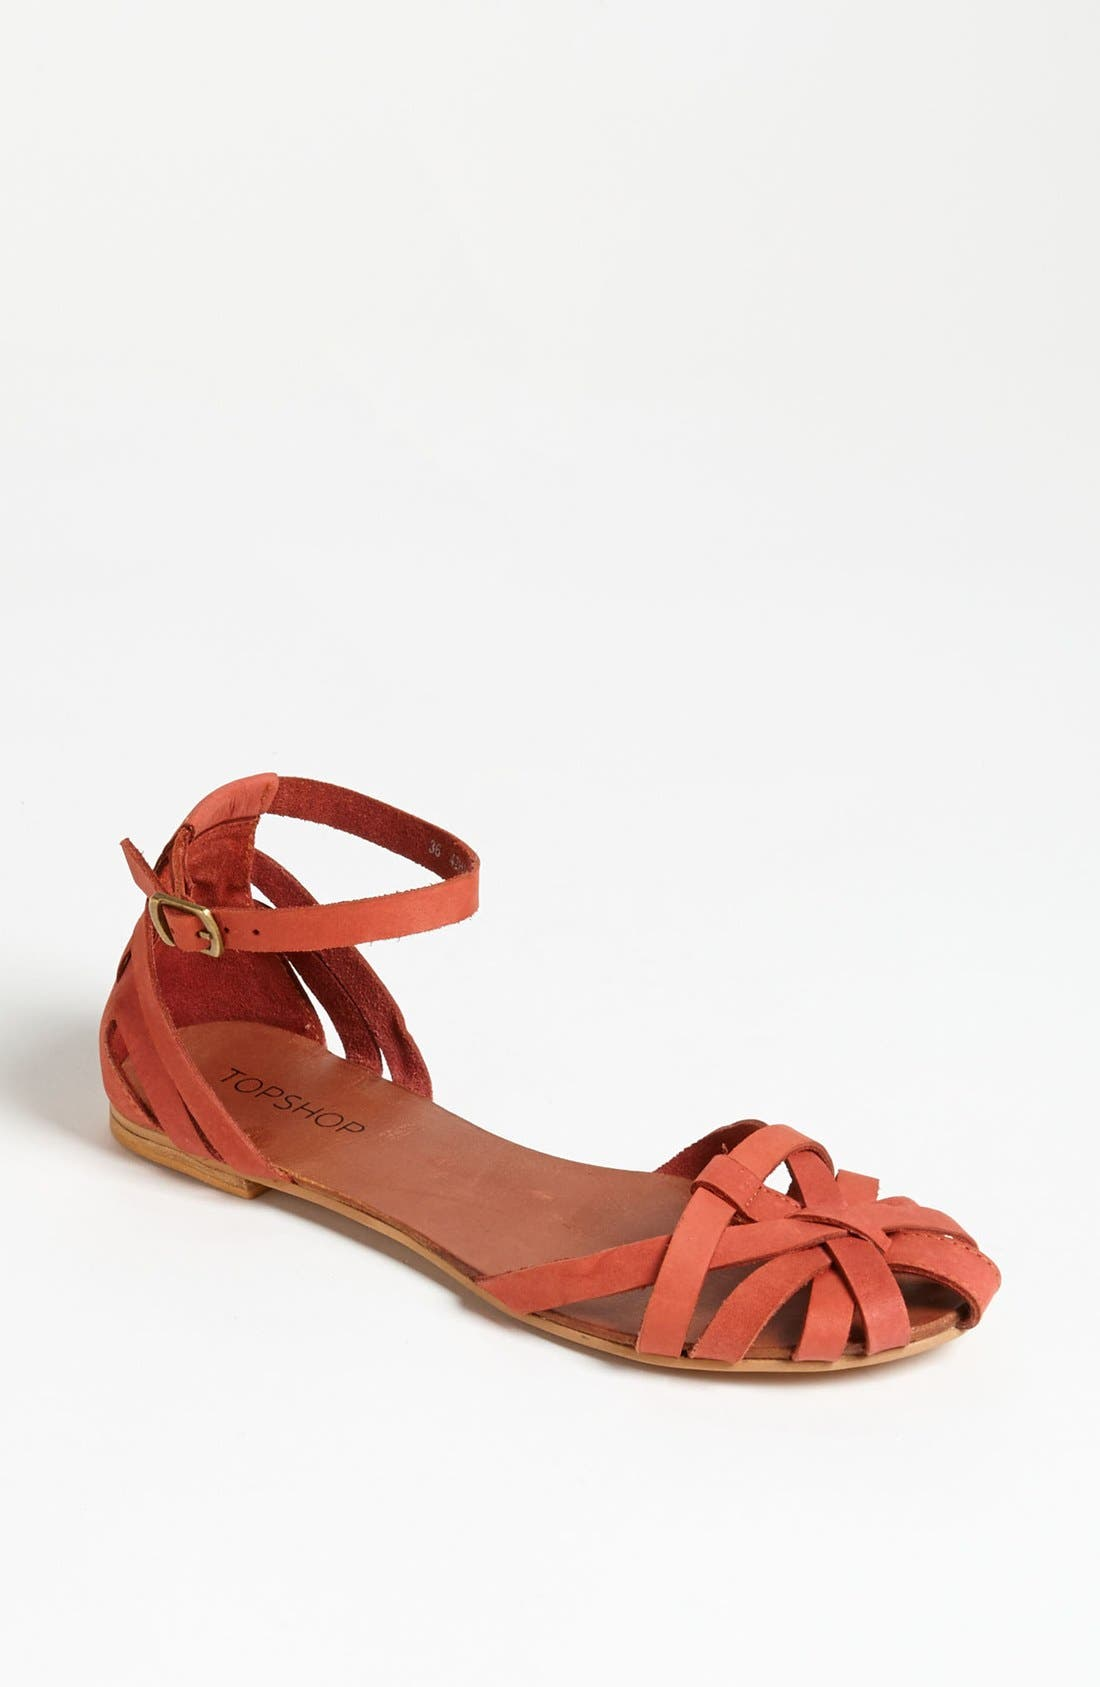 Alternate Image 1 Selected - Topshop 'Happy' Cage Toe Sandal